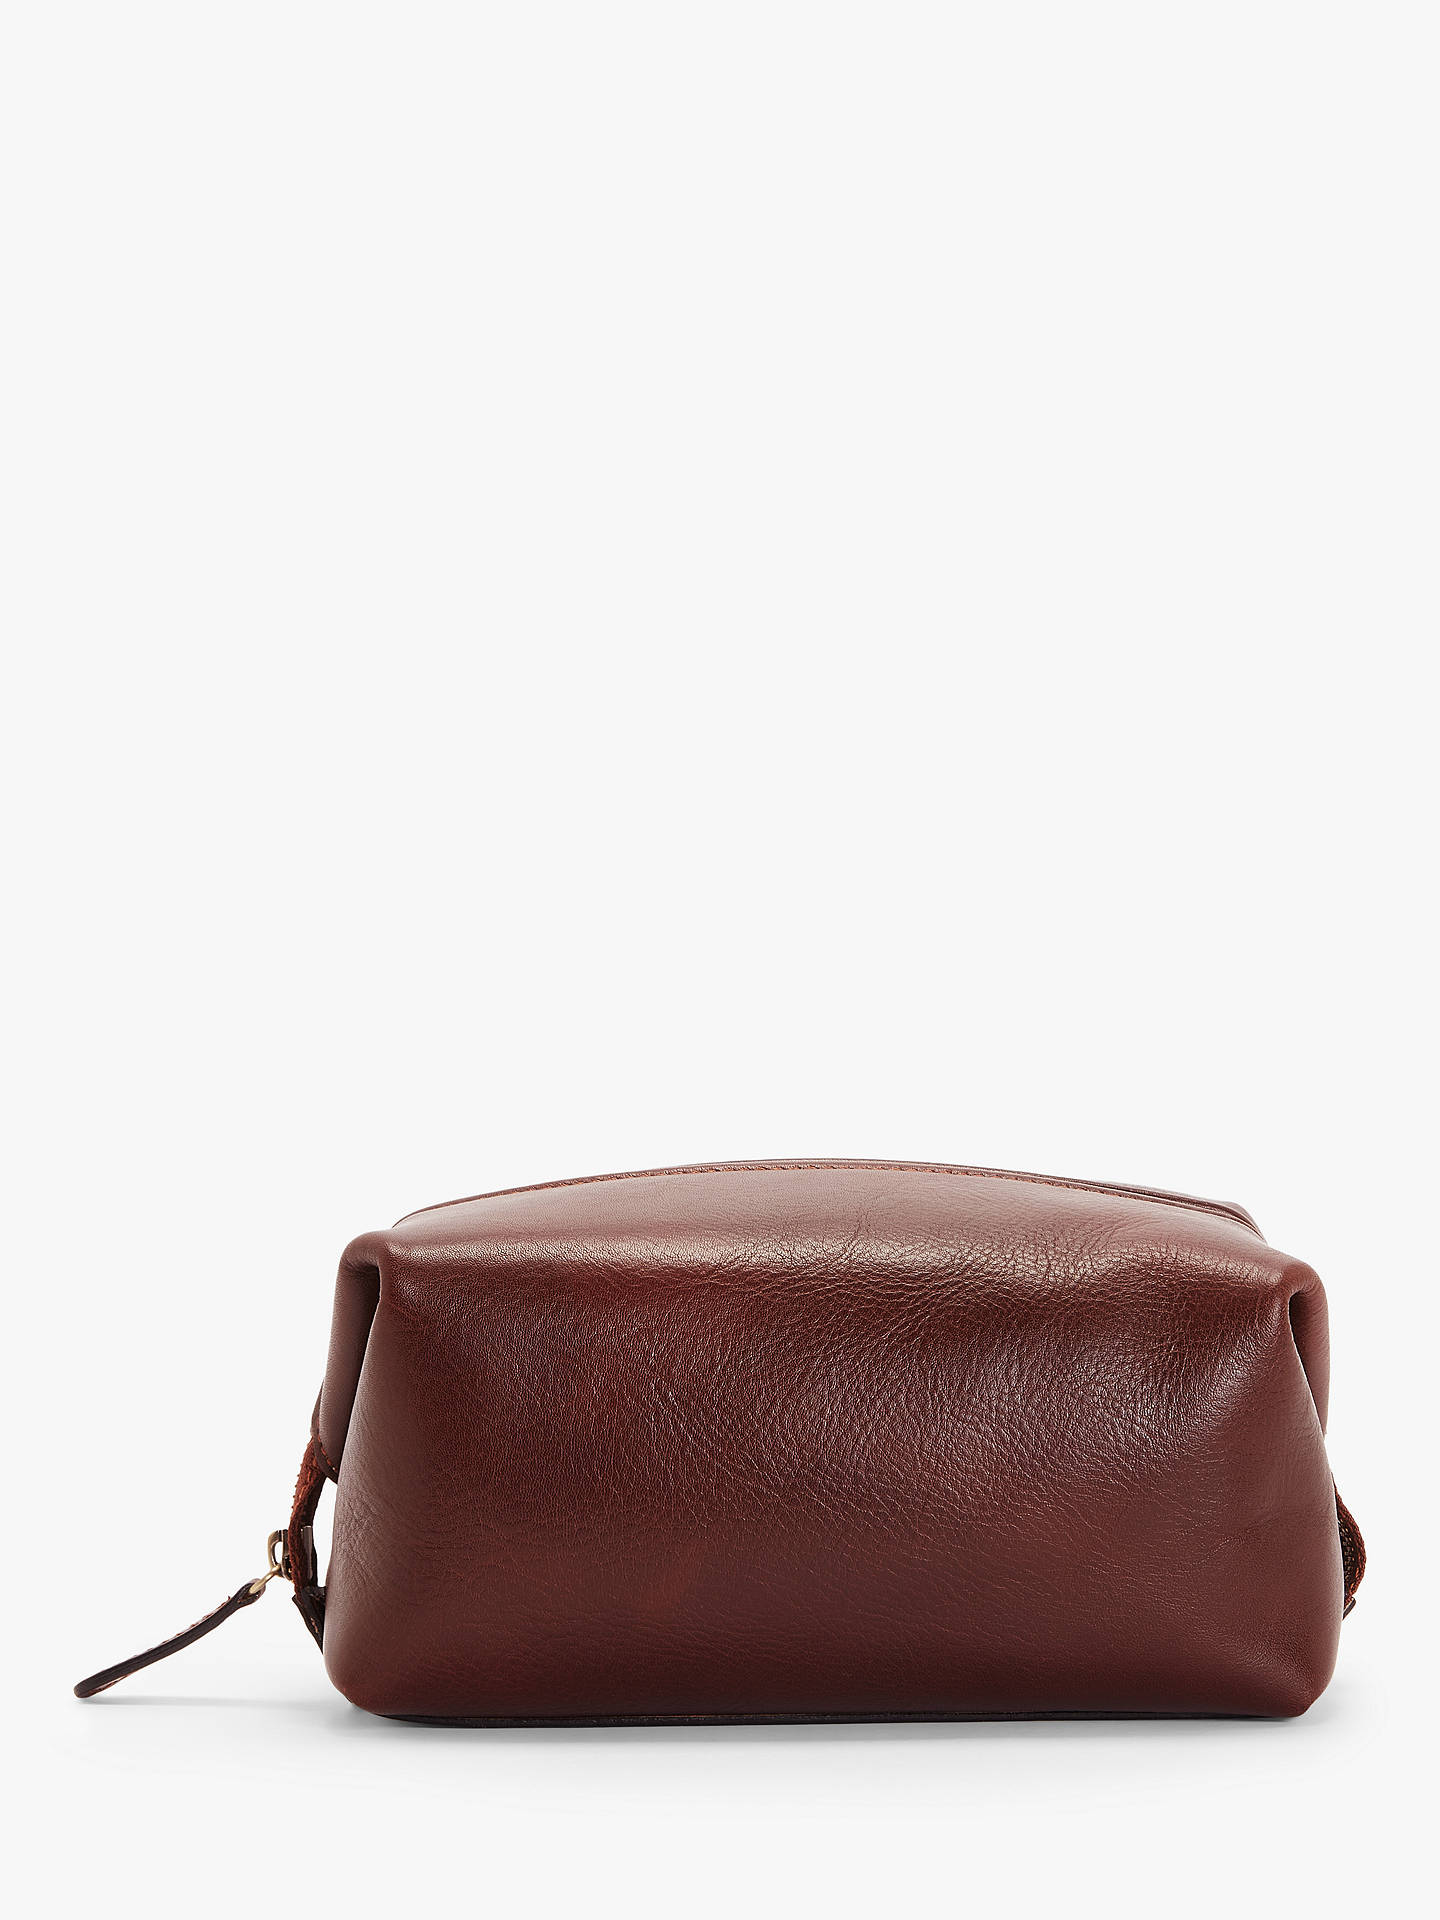 BuyJohn Lewis & Partners Made in Italy Leather Wash Bag, Brown Online at johnlewis.com